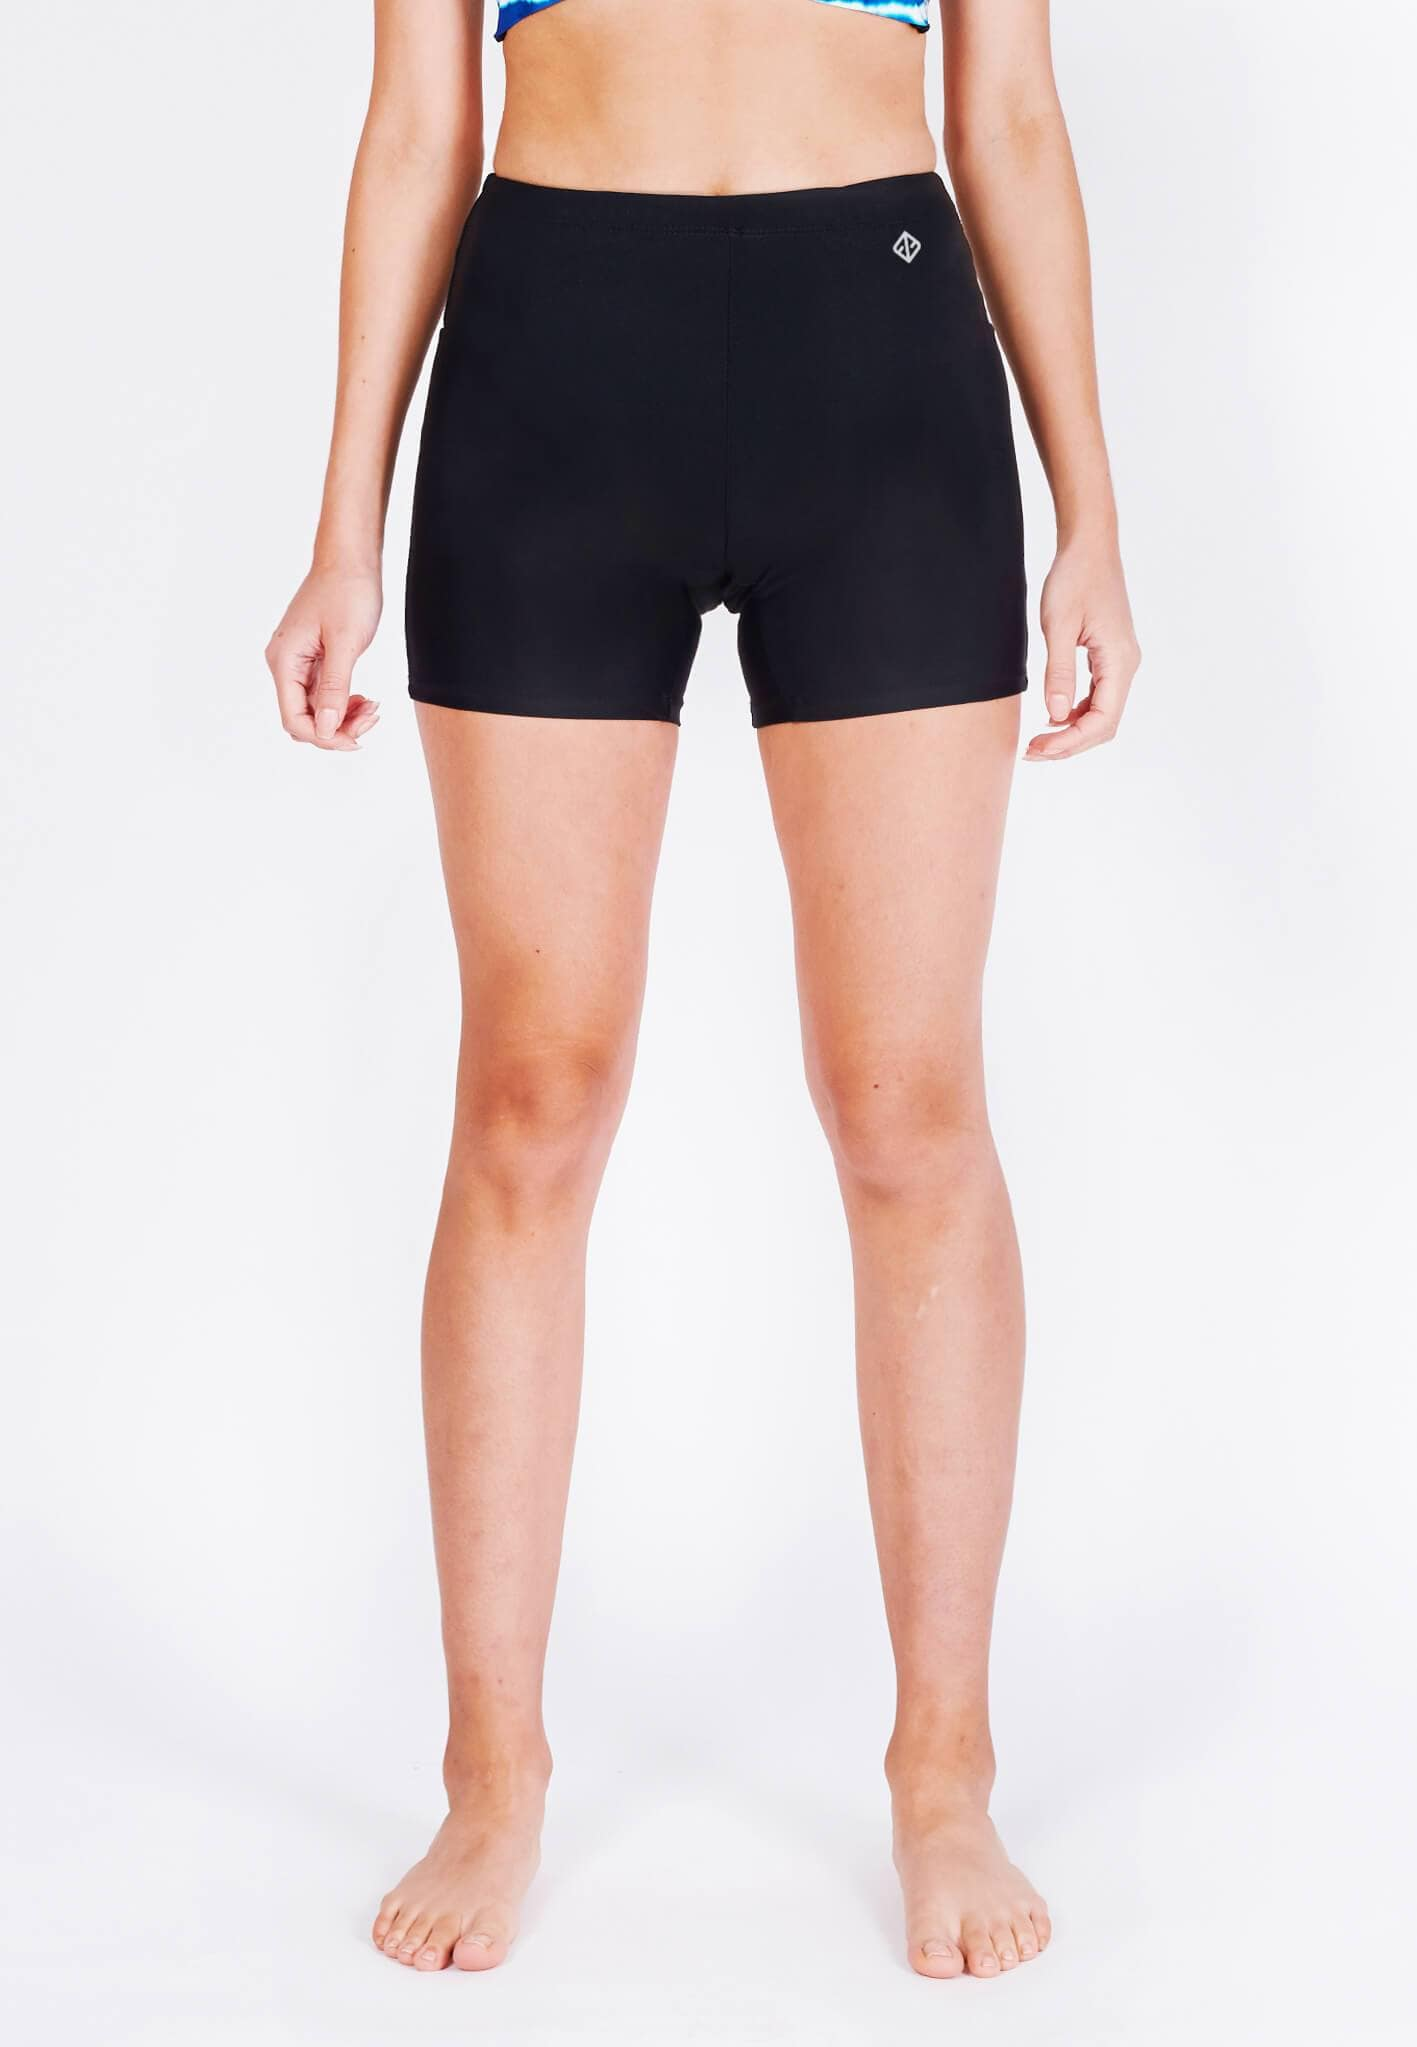 FUNFIT Basic Bike Shorts in Black (S - L)